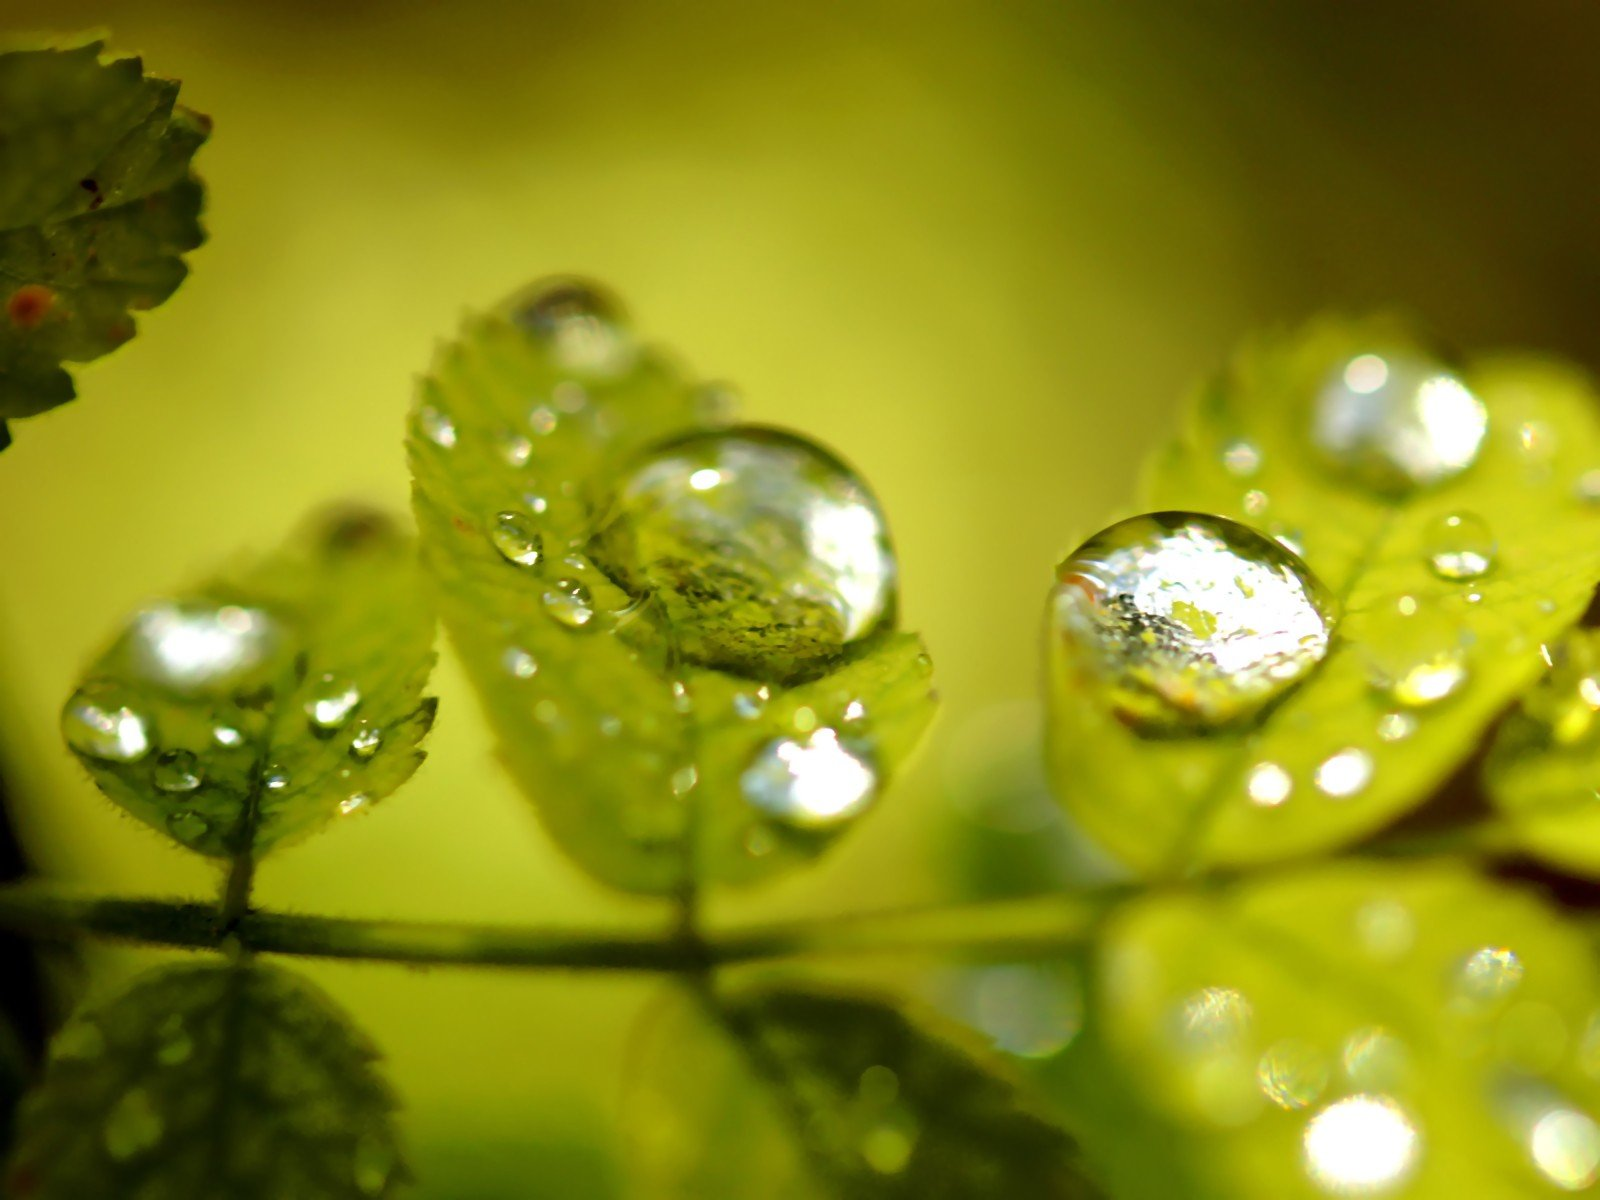 Green Nature Wall Leaves Grass Water Drops Flora Floral Wallpaper